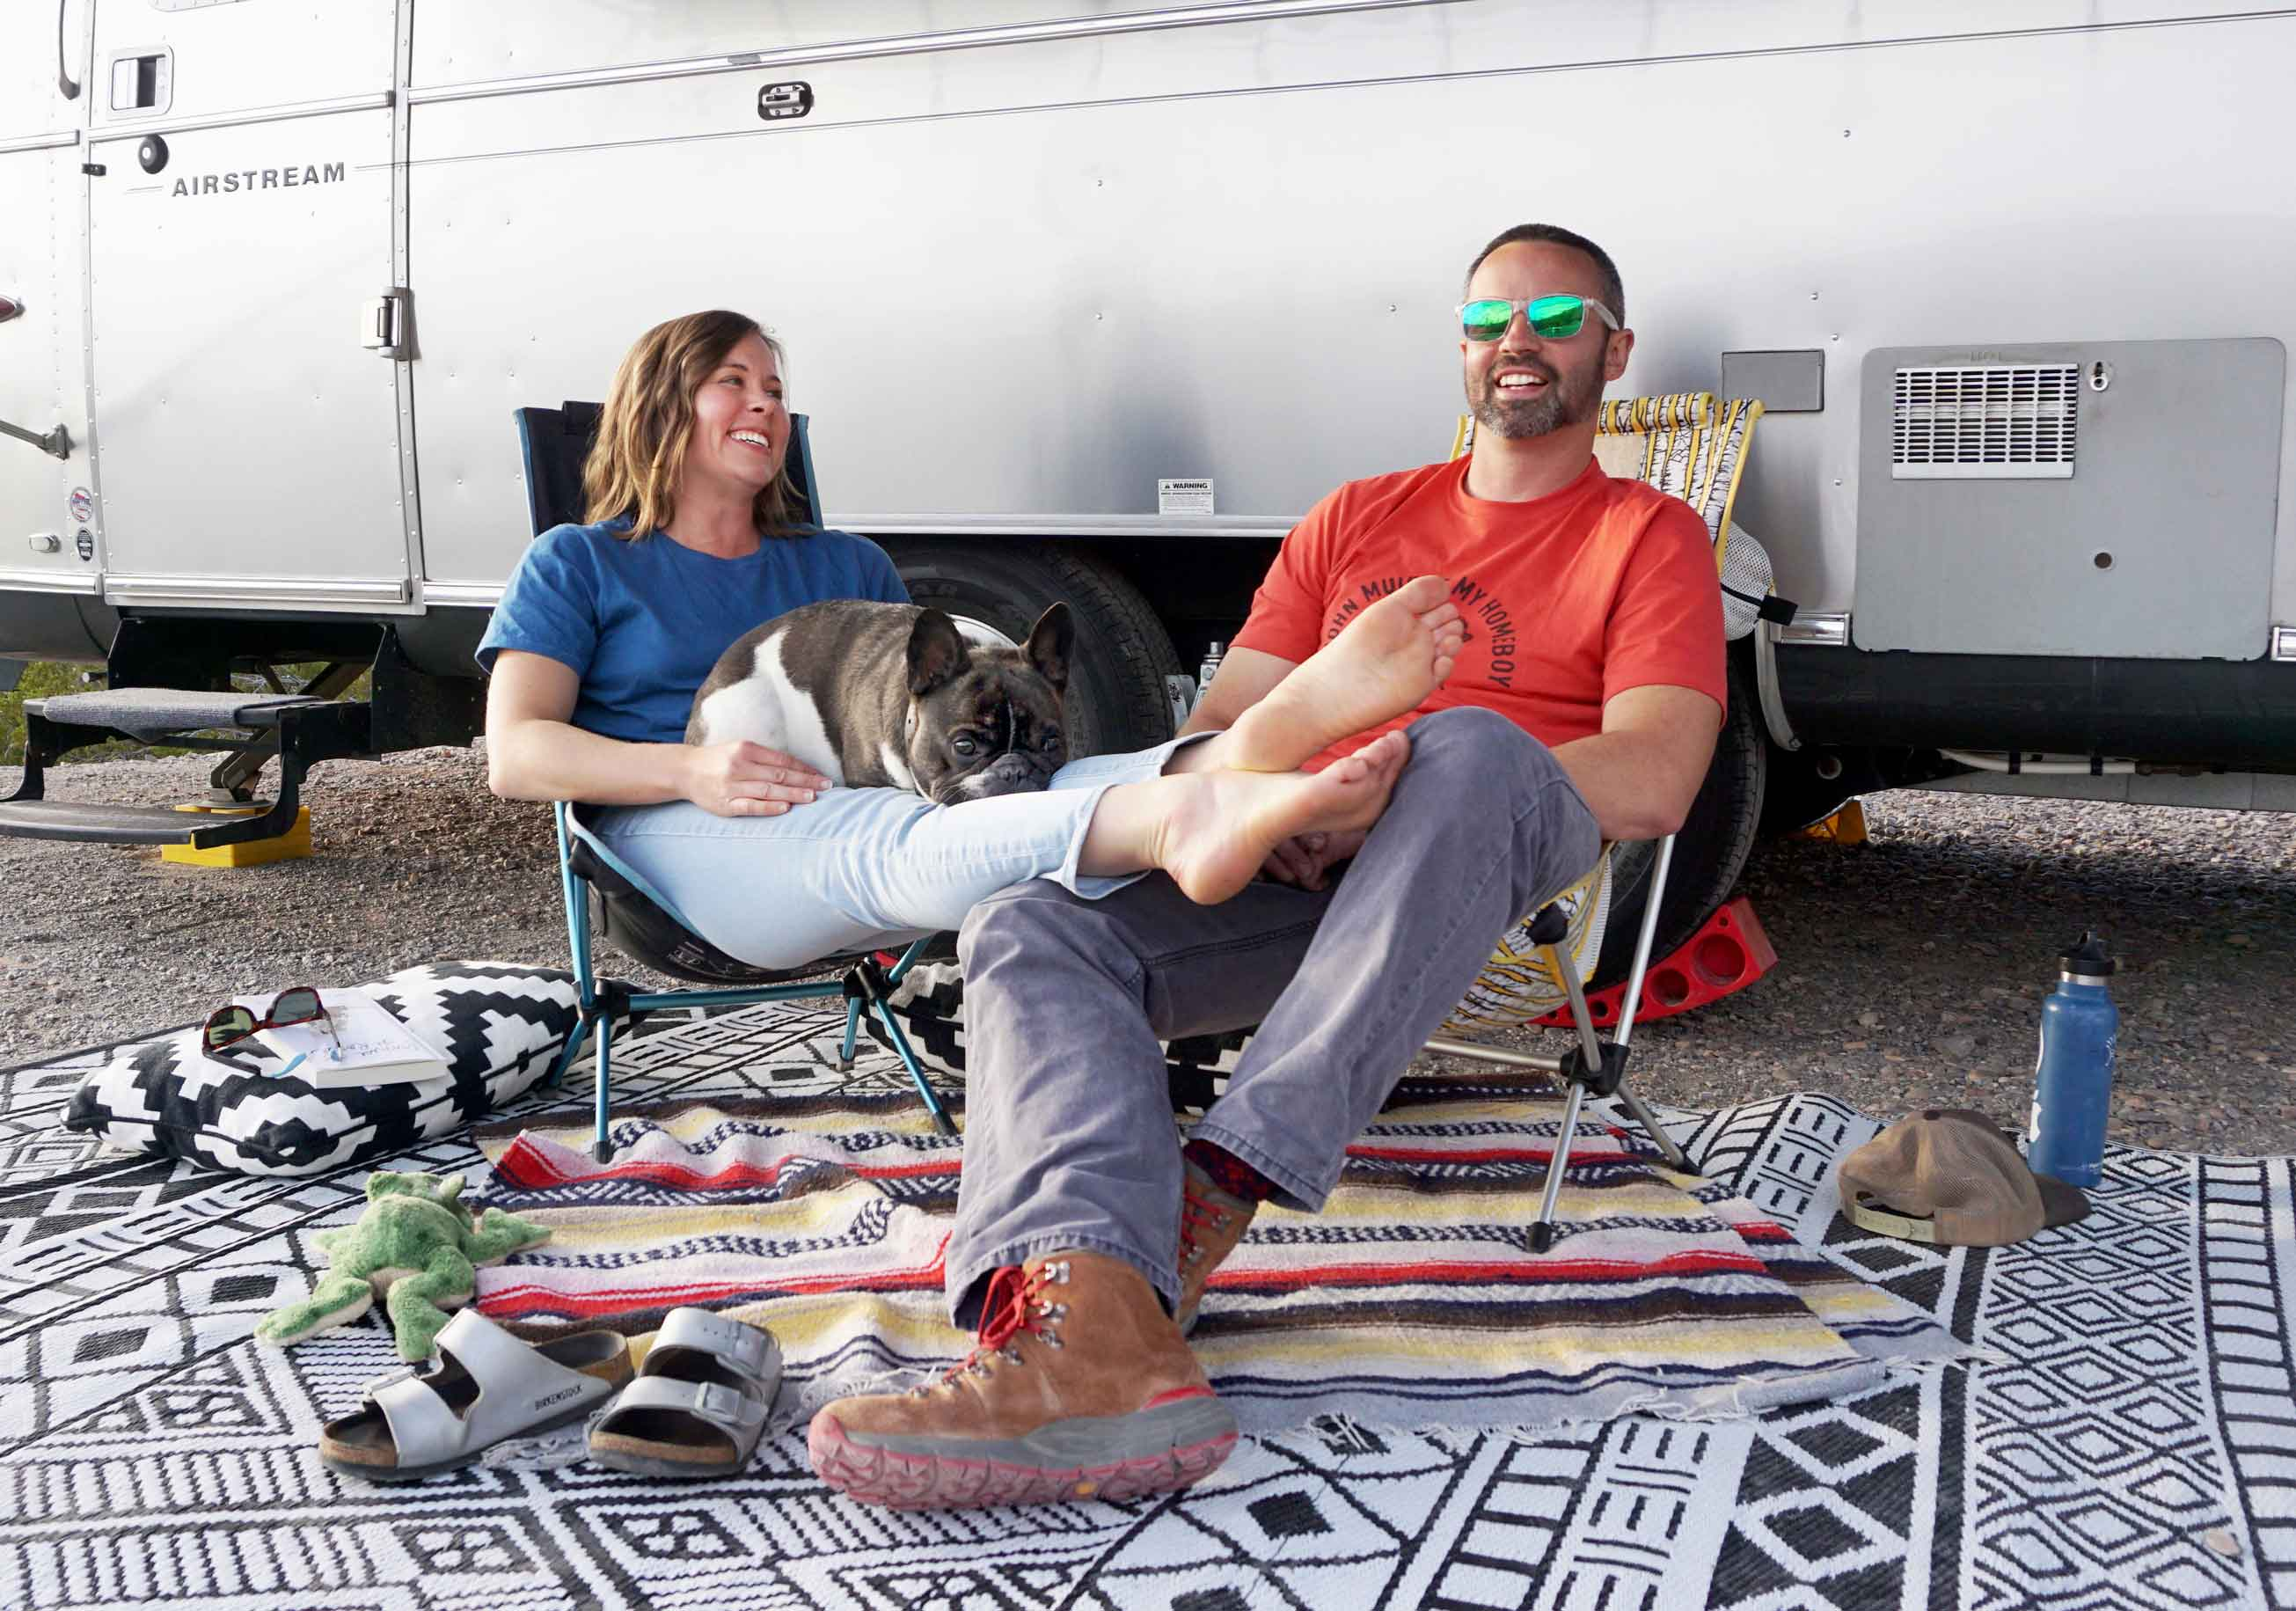 Kate Smith Company Owners with their dog in front of their Airstream